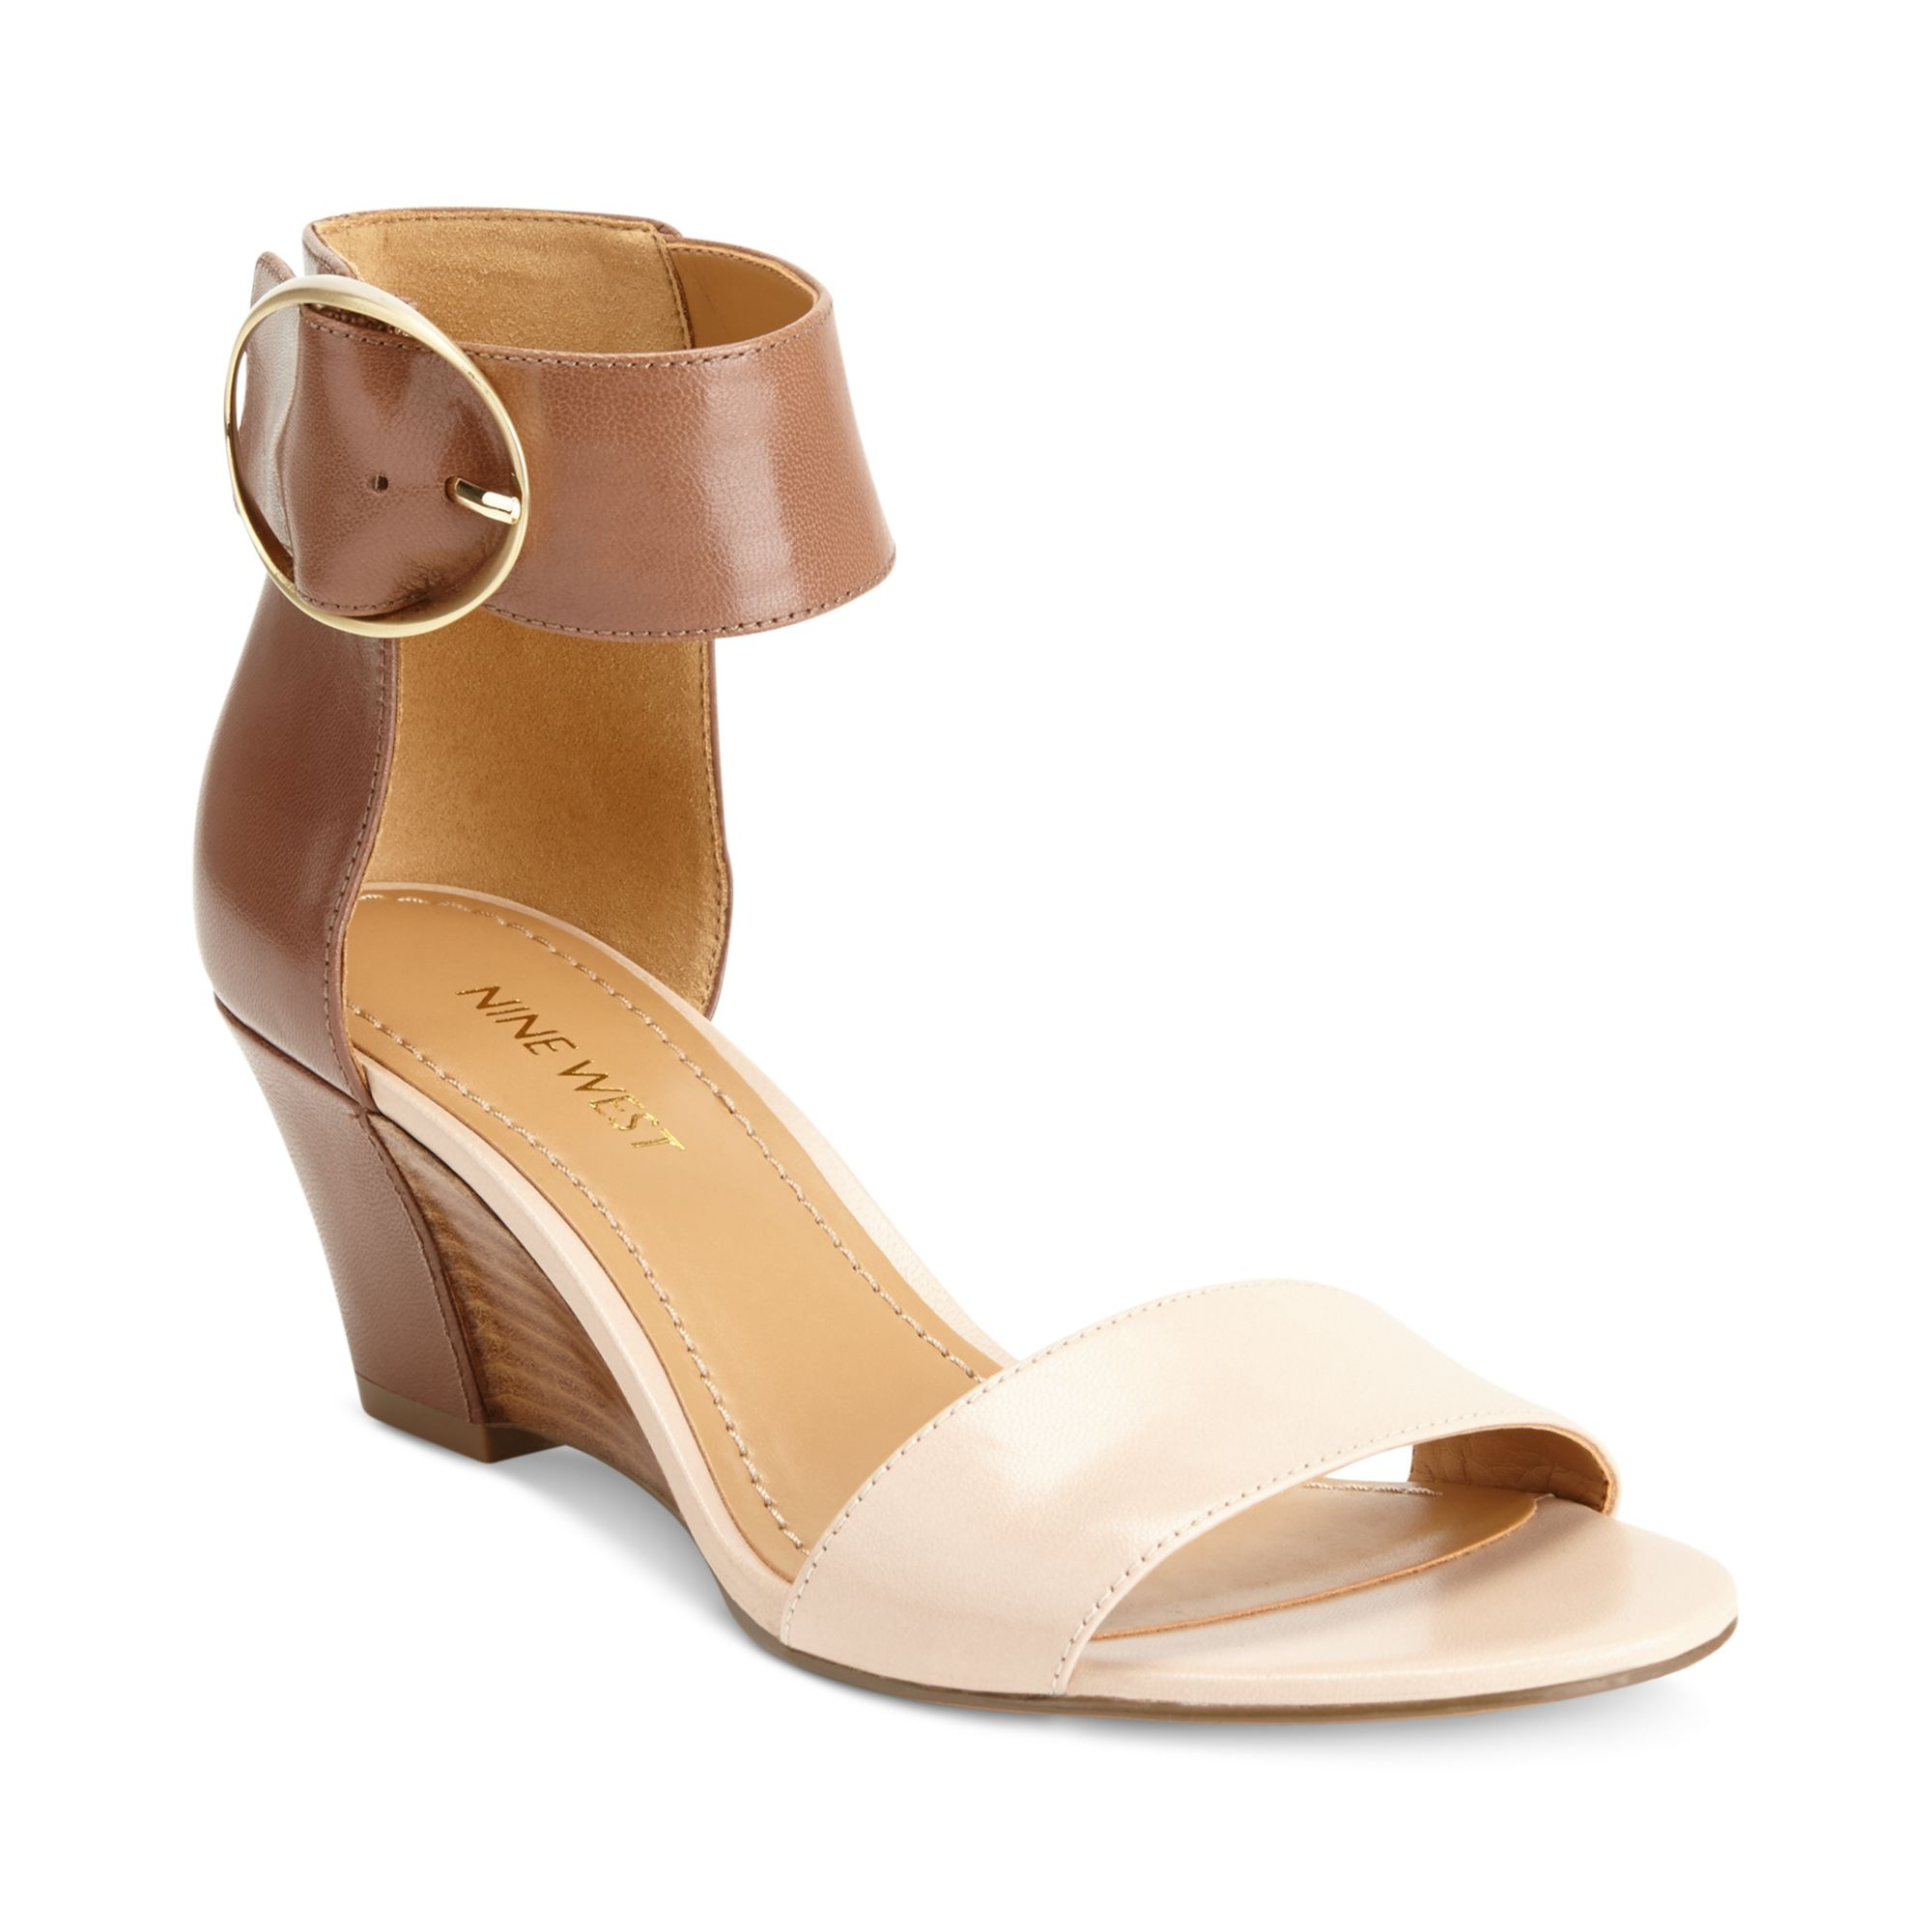 ac131b7844 Nine West Ventana Ankle Strap Demi Wedge Sandals in Brown - Lyst